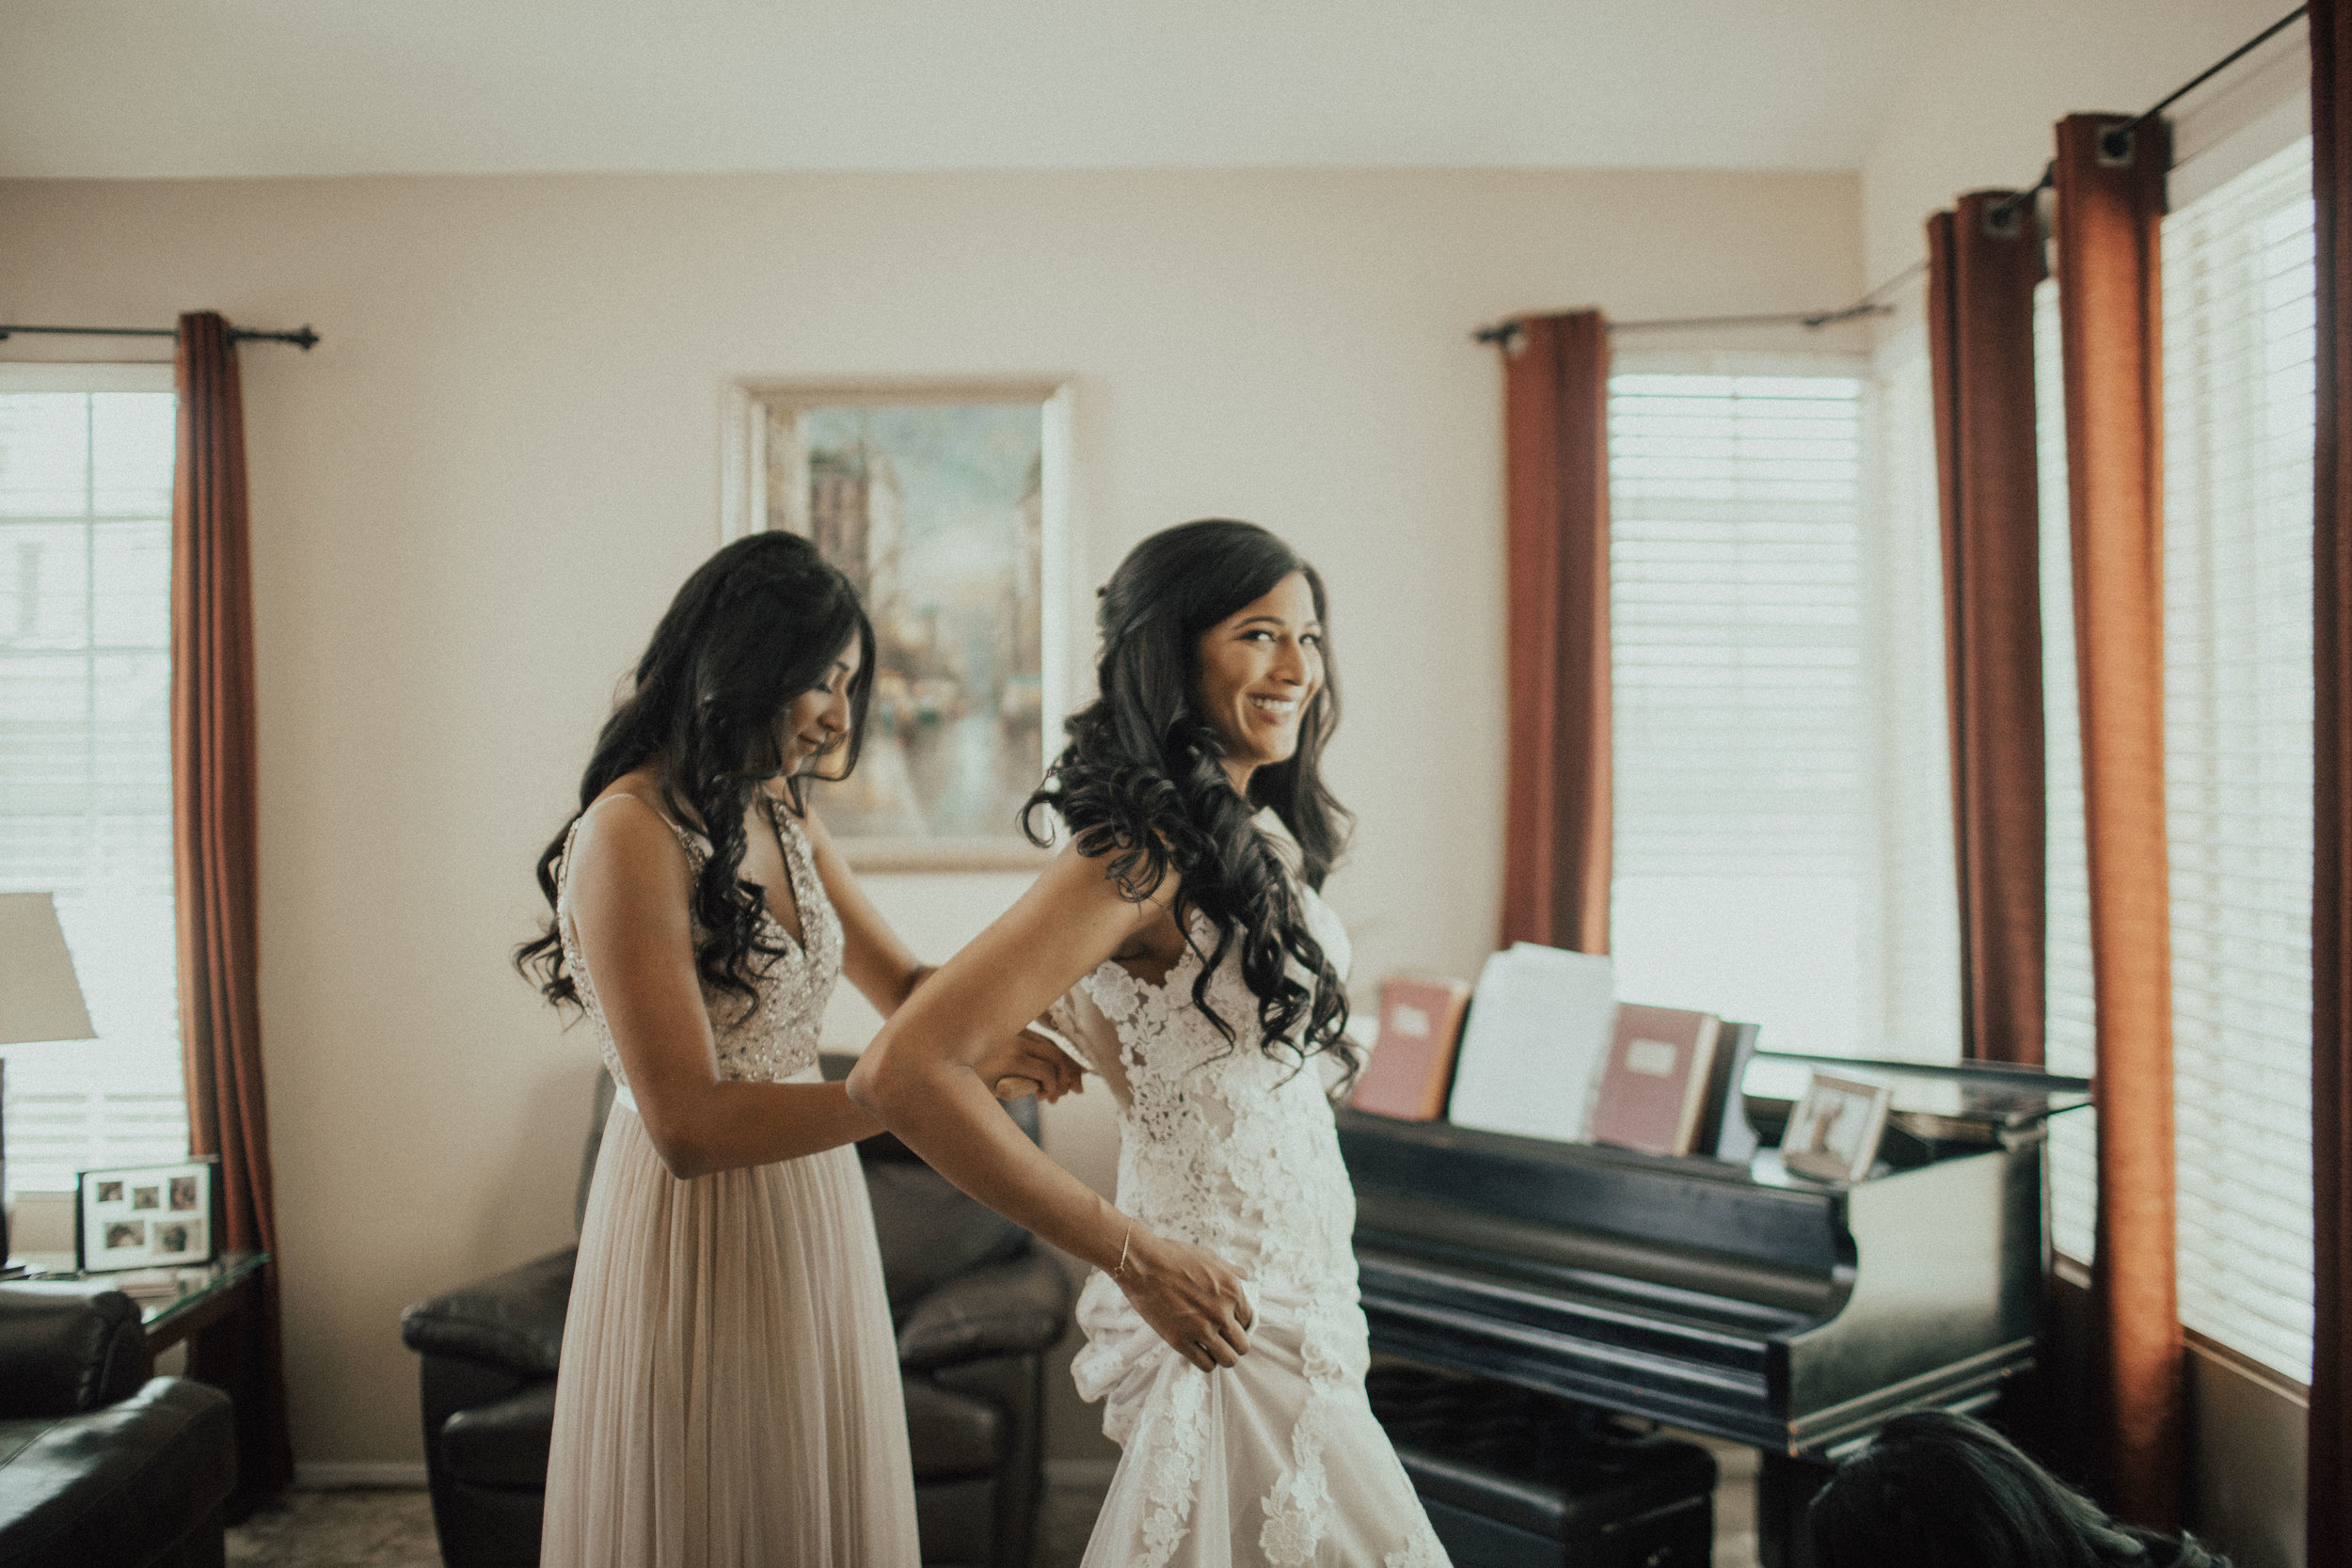 Sam&DanWedding-65.jpg